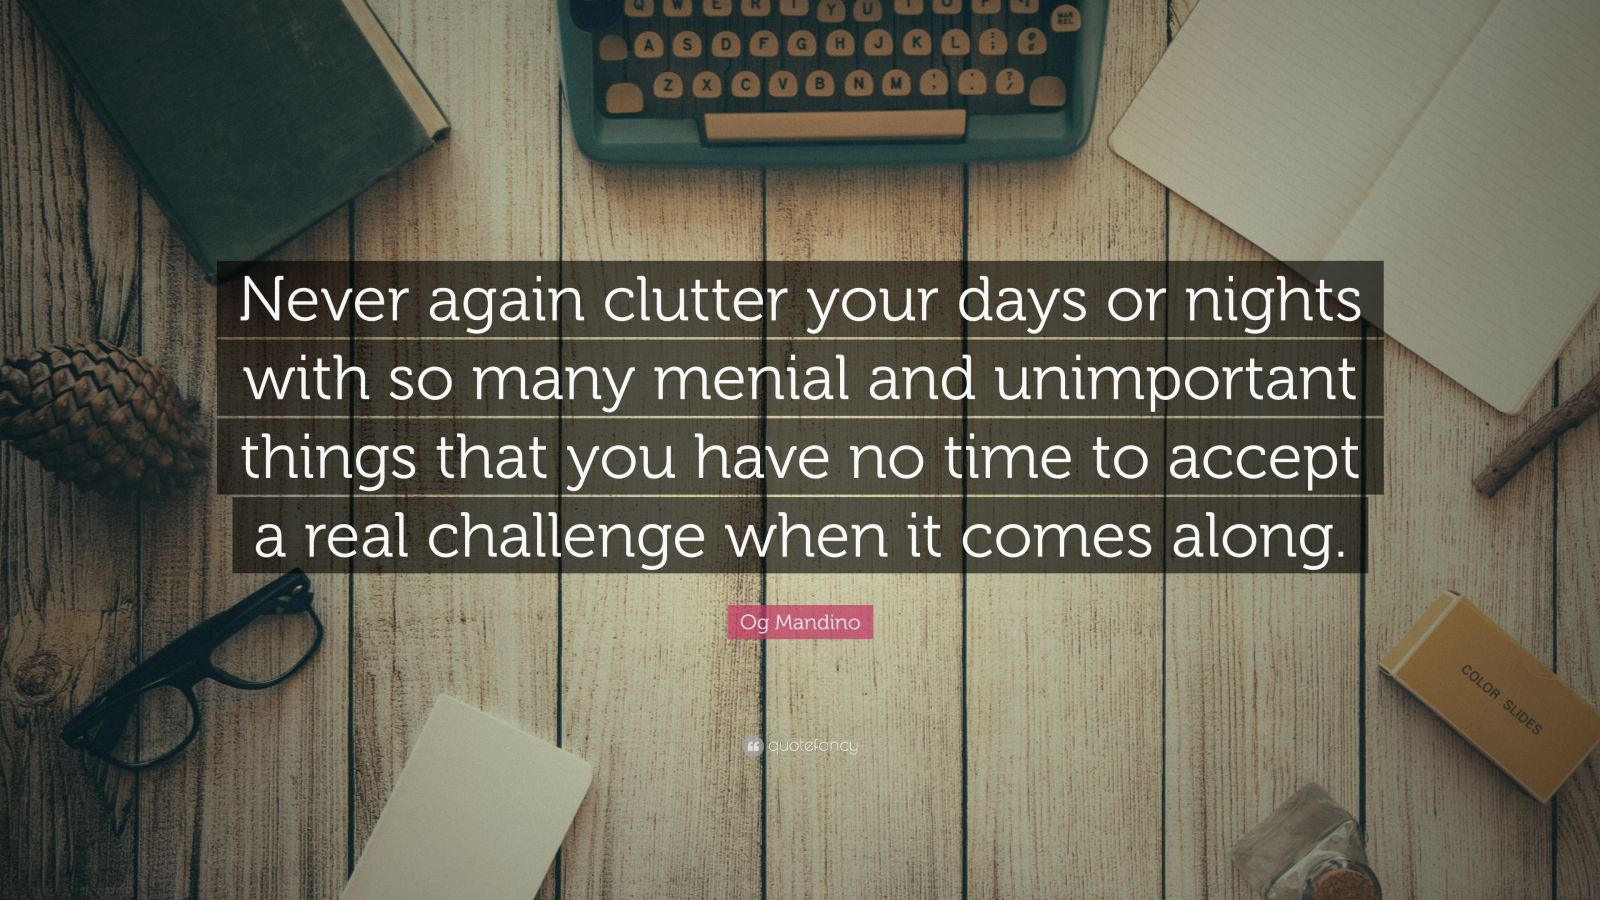 "Og Mandino Quote: ""Never again clutter your days or nights with so many menial and unimportant things that you have no time to accept a real challenge when it comes along."""